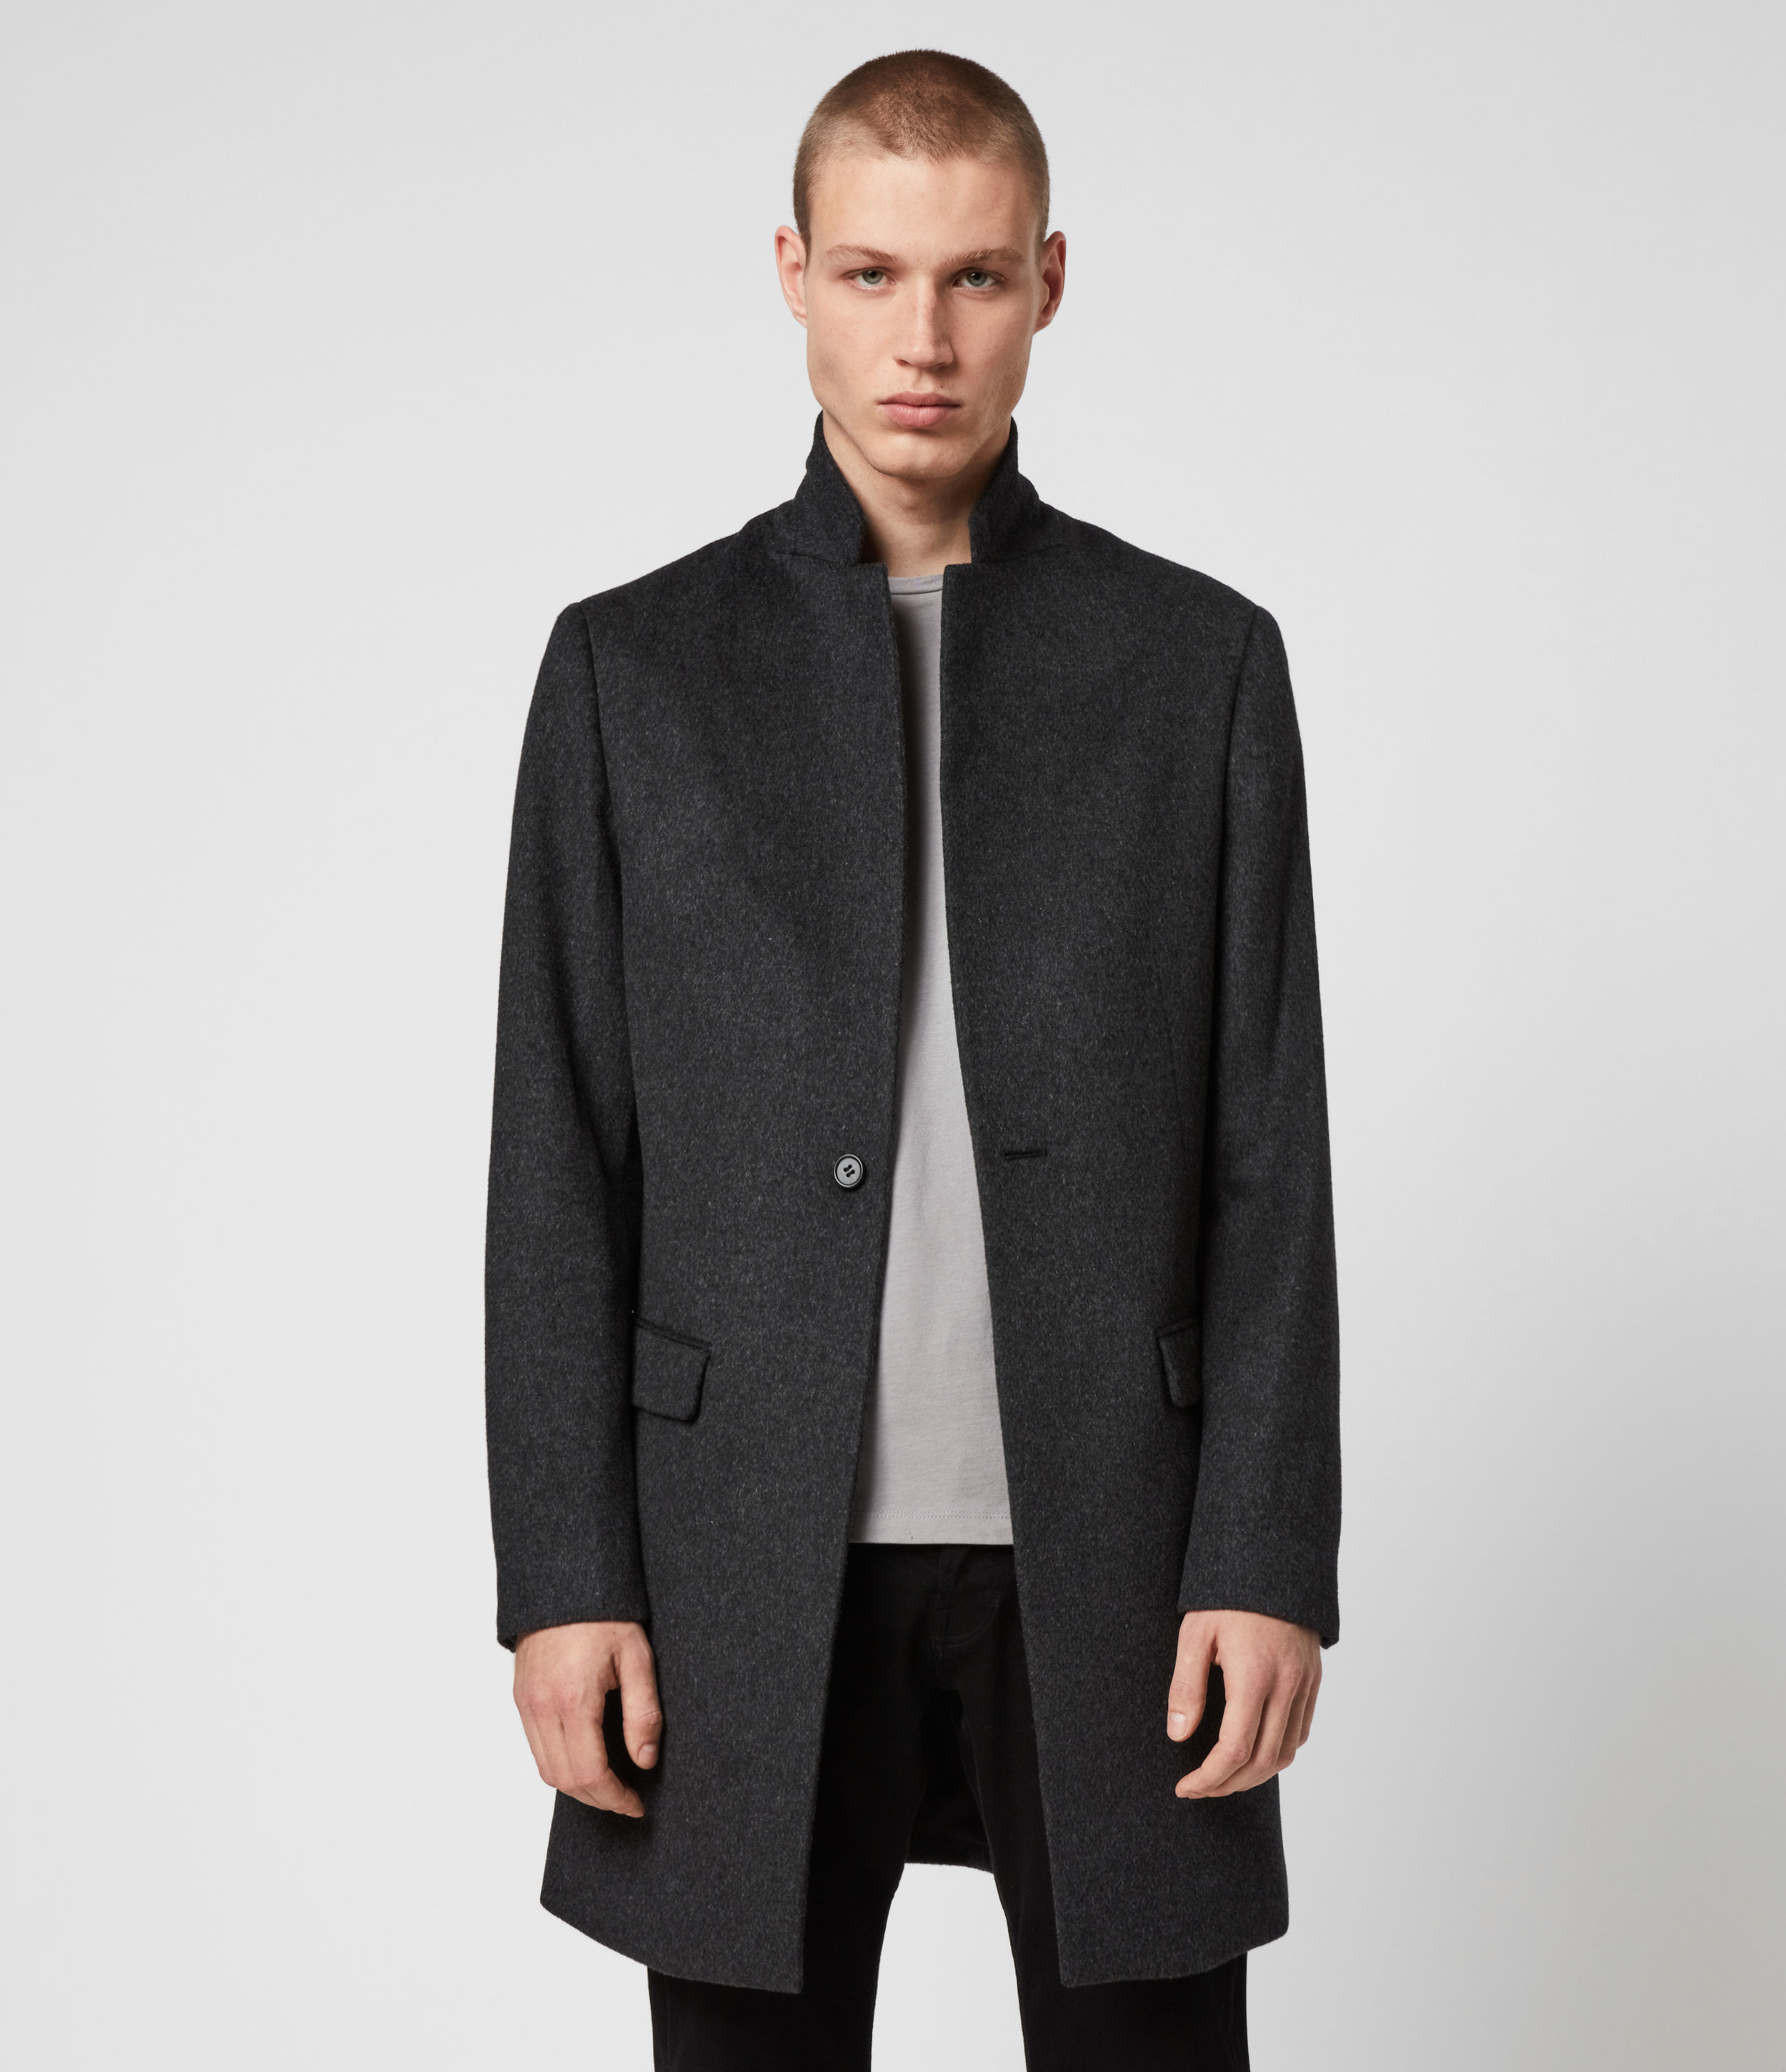 AllSaints Men's Cotton Fully Lined Slim Fit Bodell Wool Coat, Grey, Size: 40